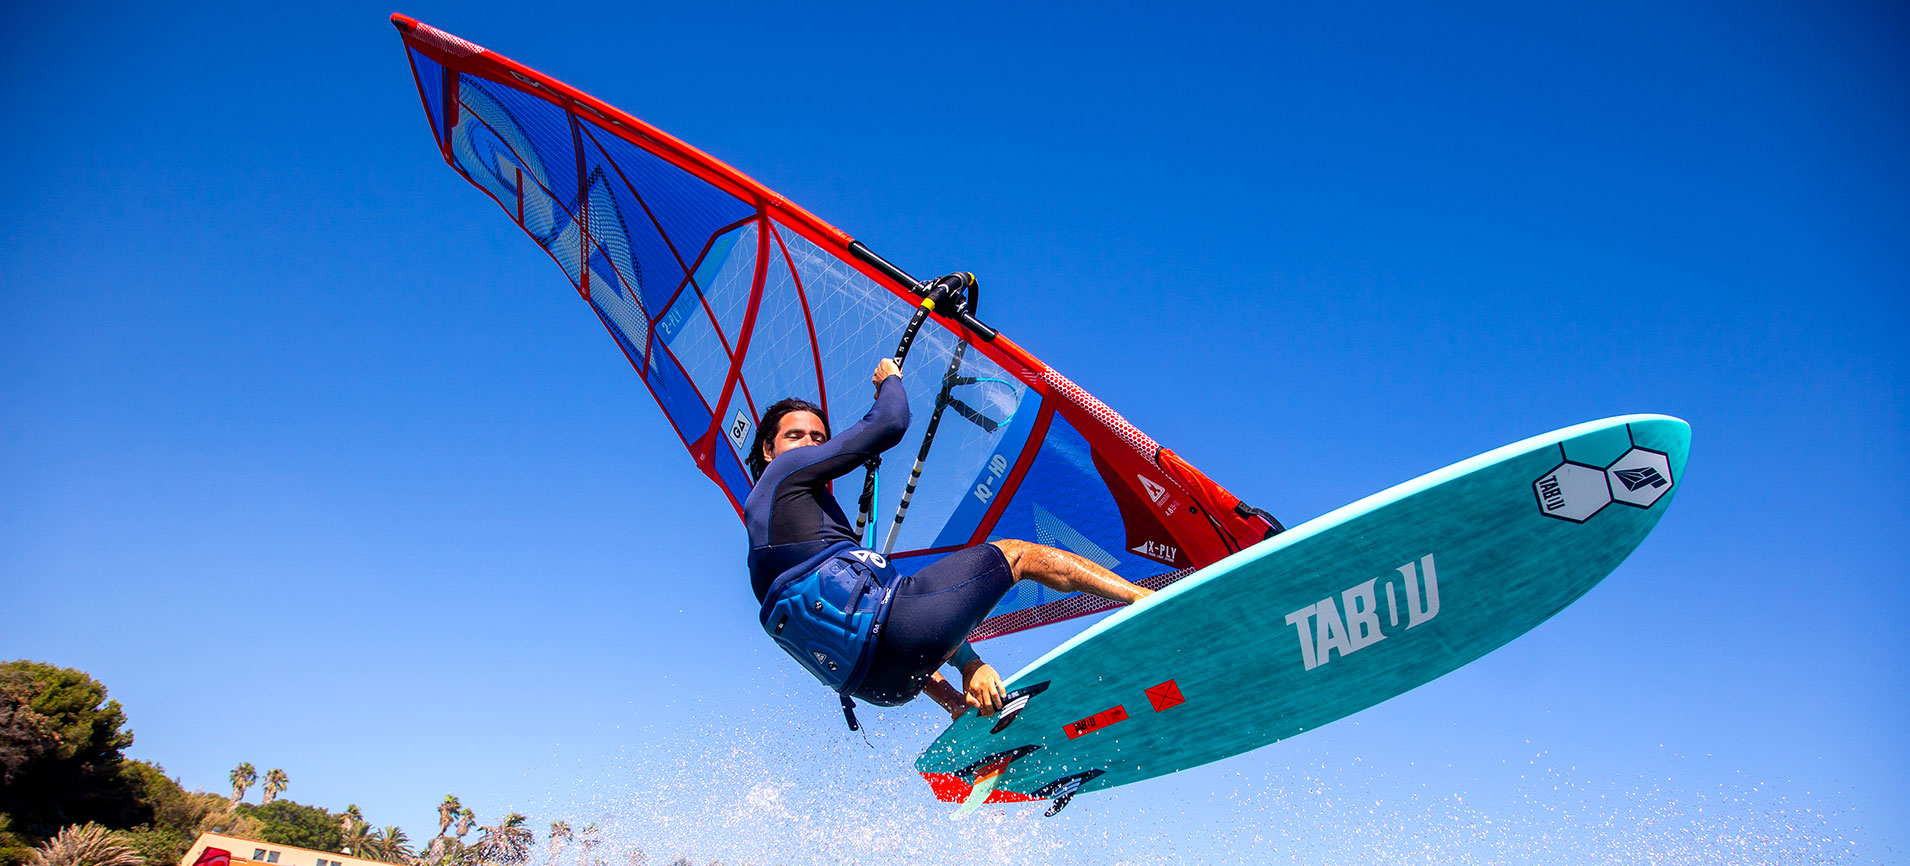 Tabou 3S Plus 2021 Windsurf Jump